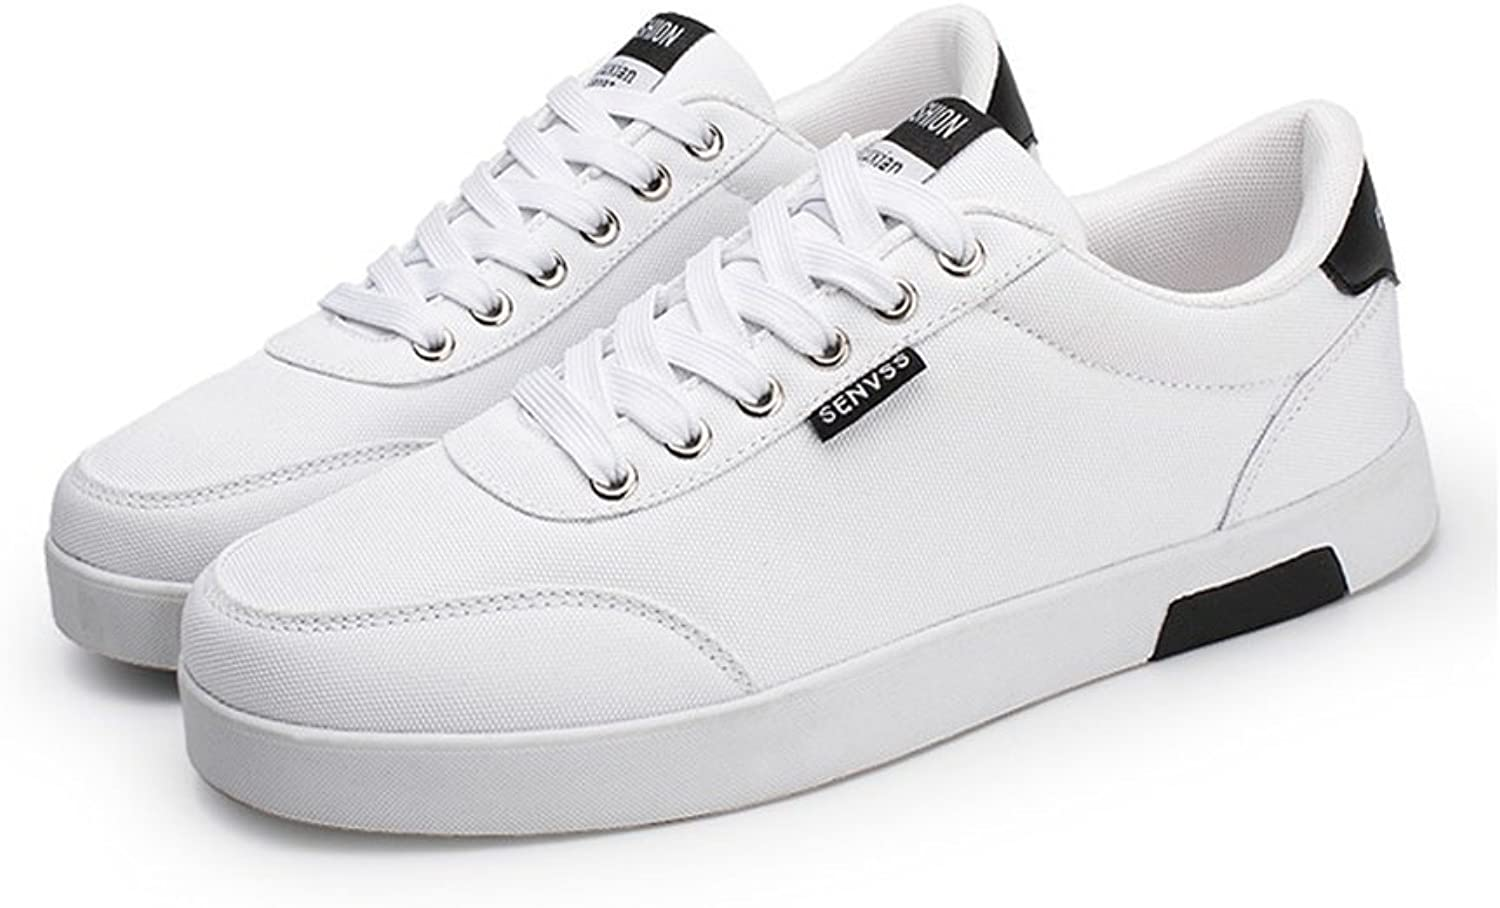 RENMEN Men's Breathable Board shoes Classic Canvas shoes Men 38-43, white